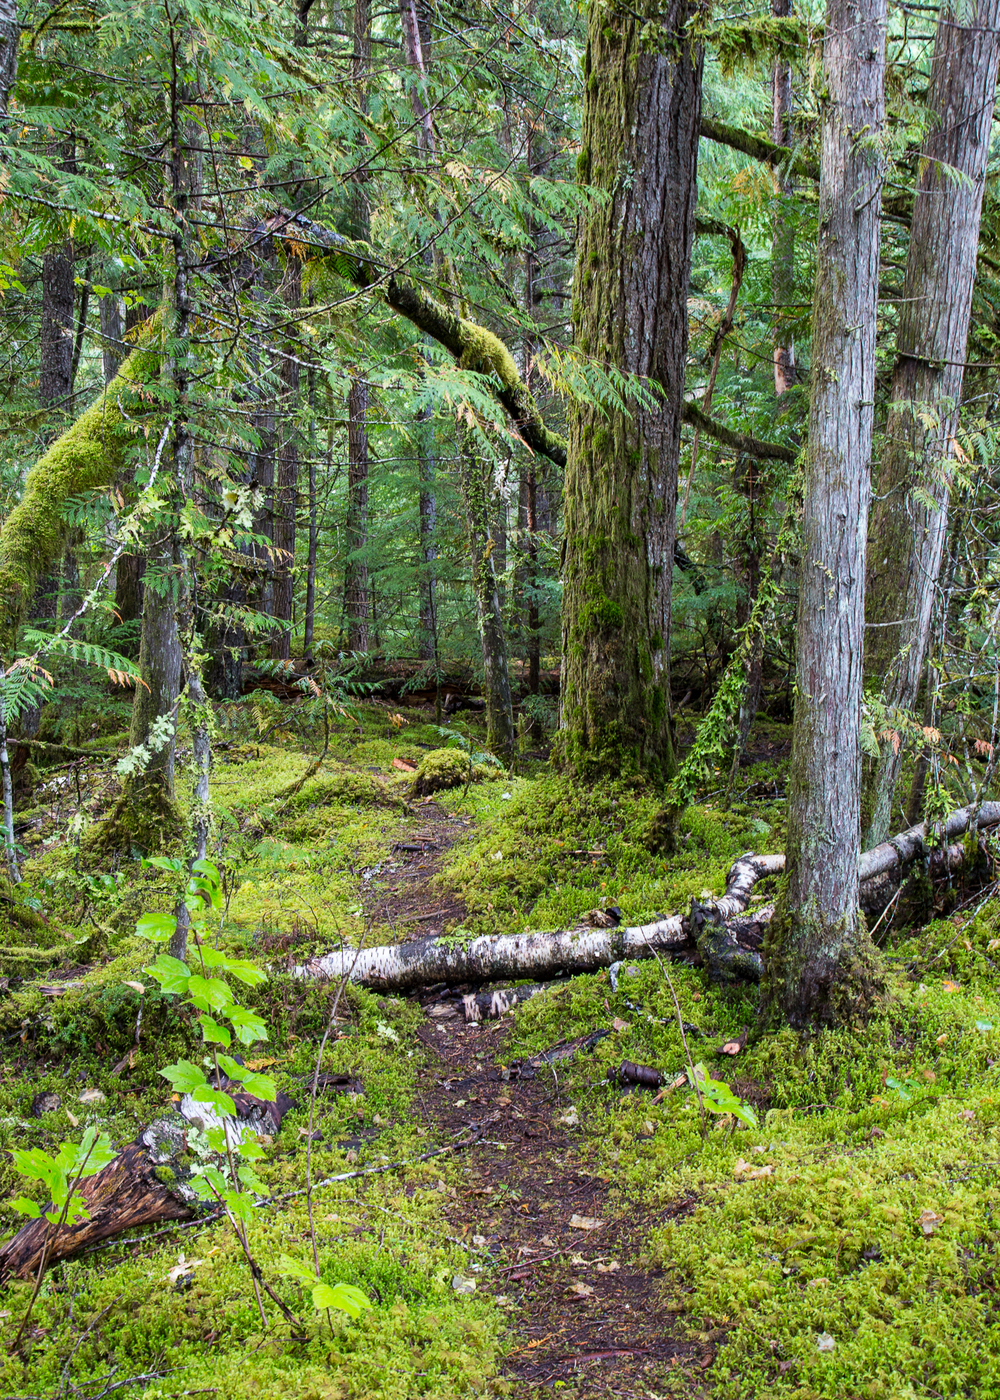 The path to Vetter Falls, through the moss-rich temperate rainforest.